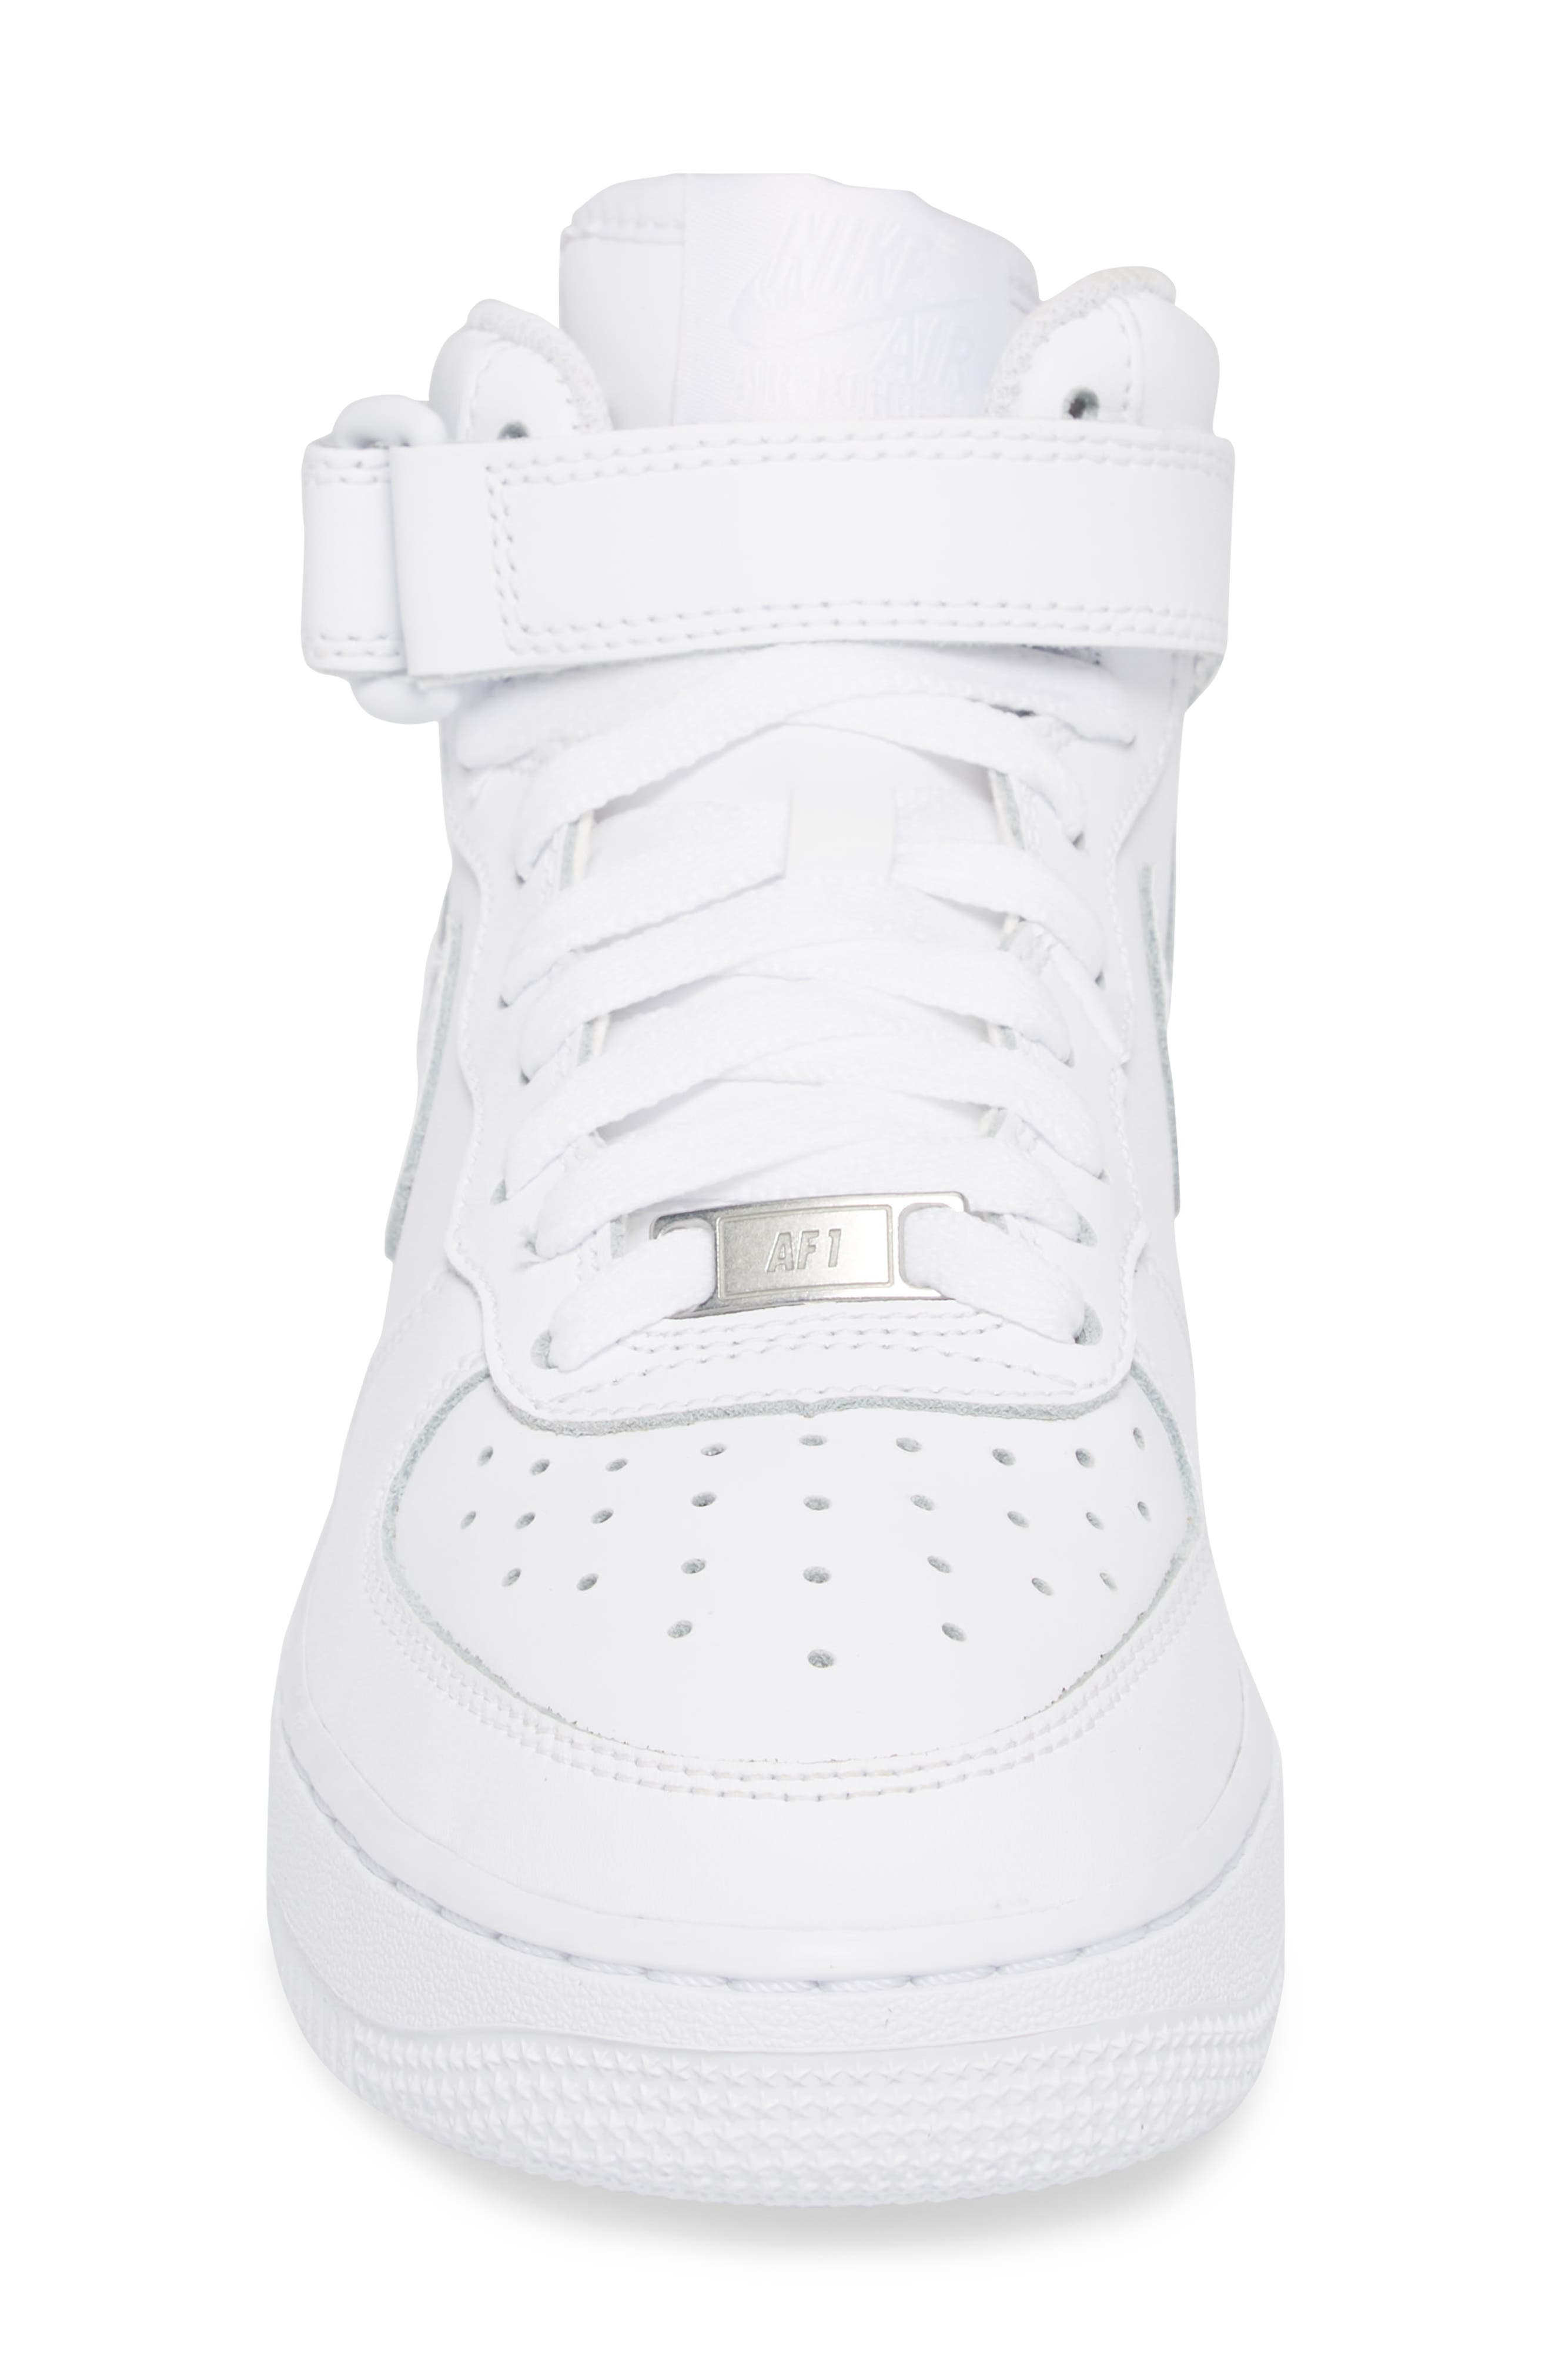 Air Force 1 Mid Top Sneaker,                             Alternate thumbnail 4, color,                             White